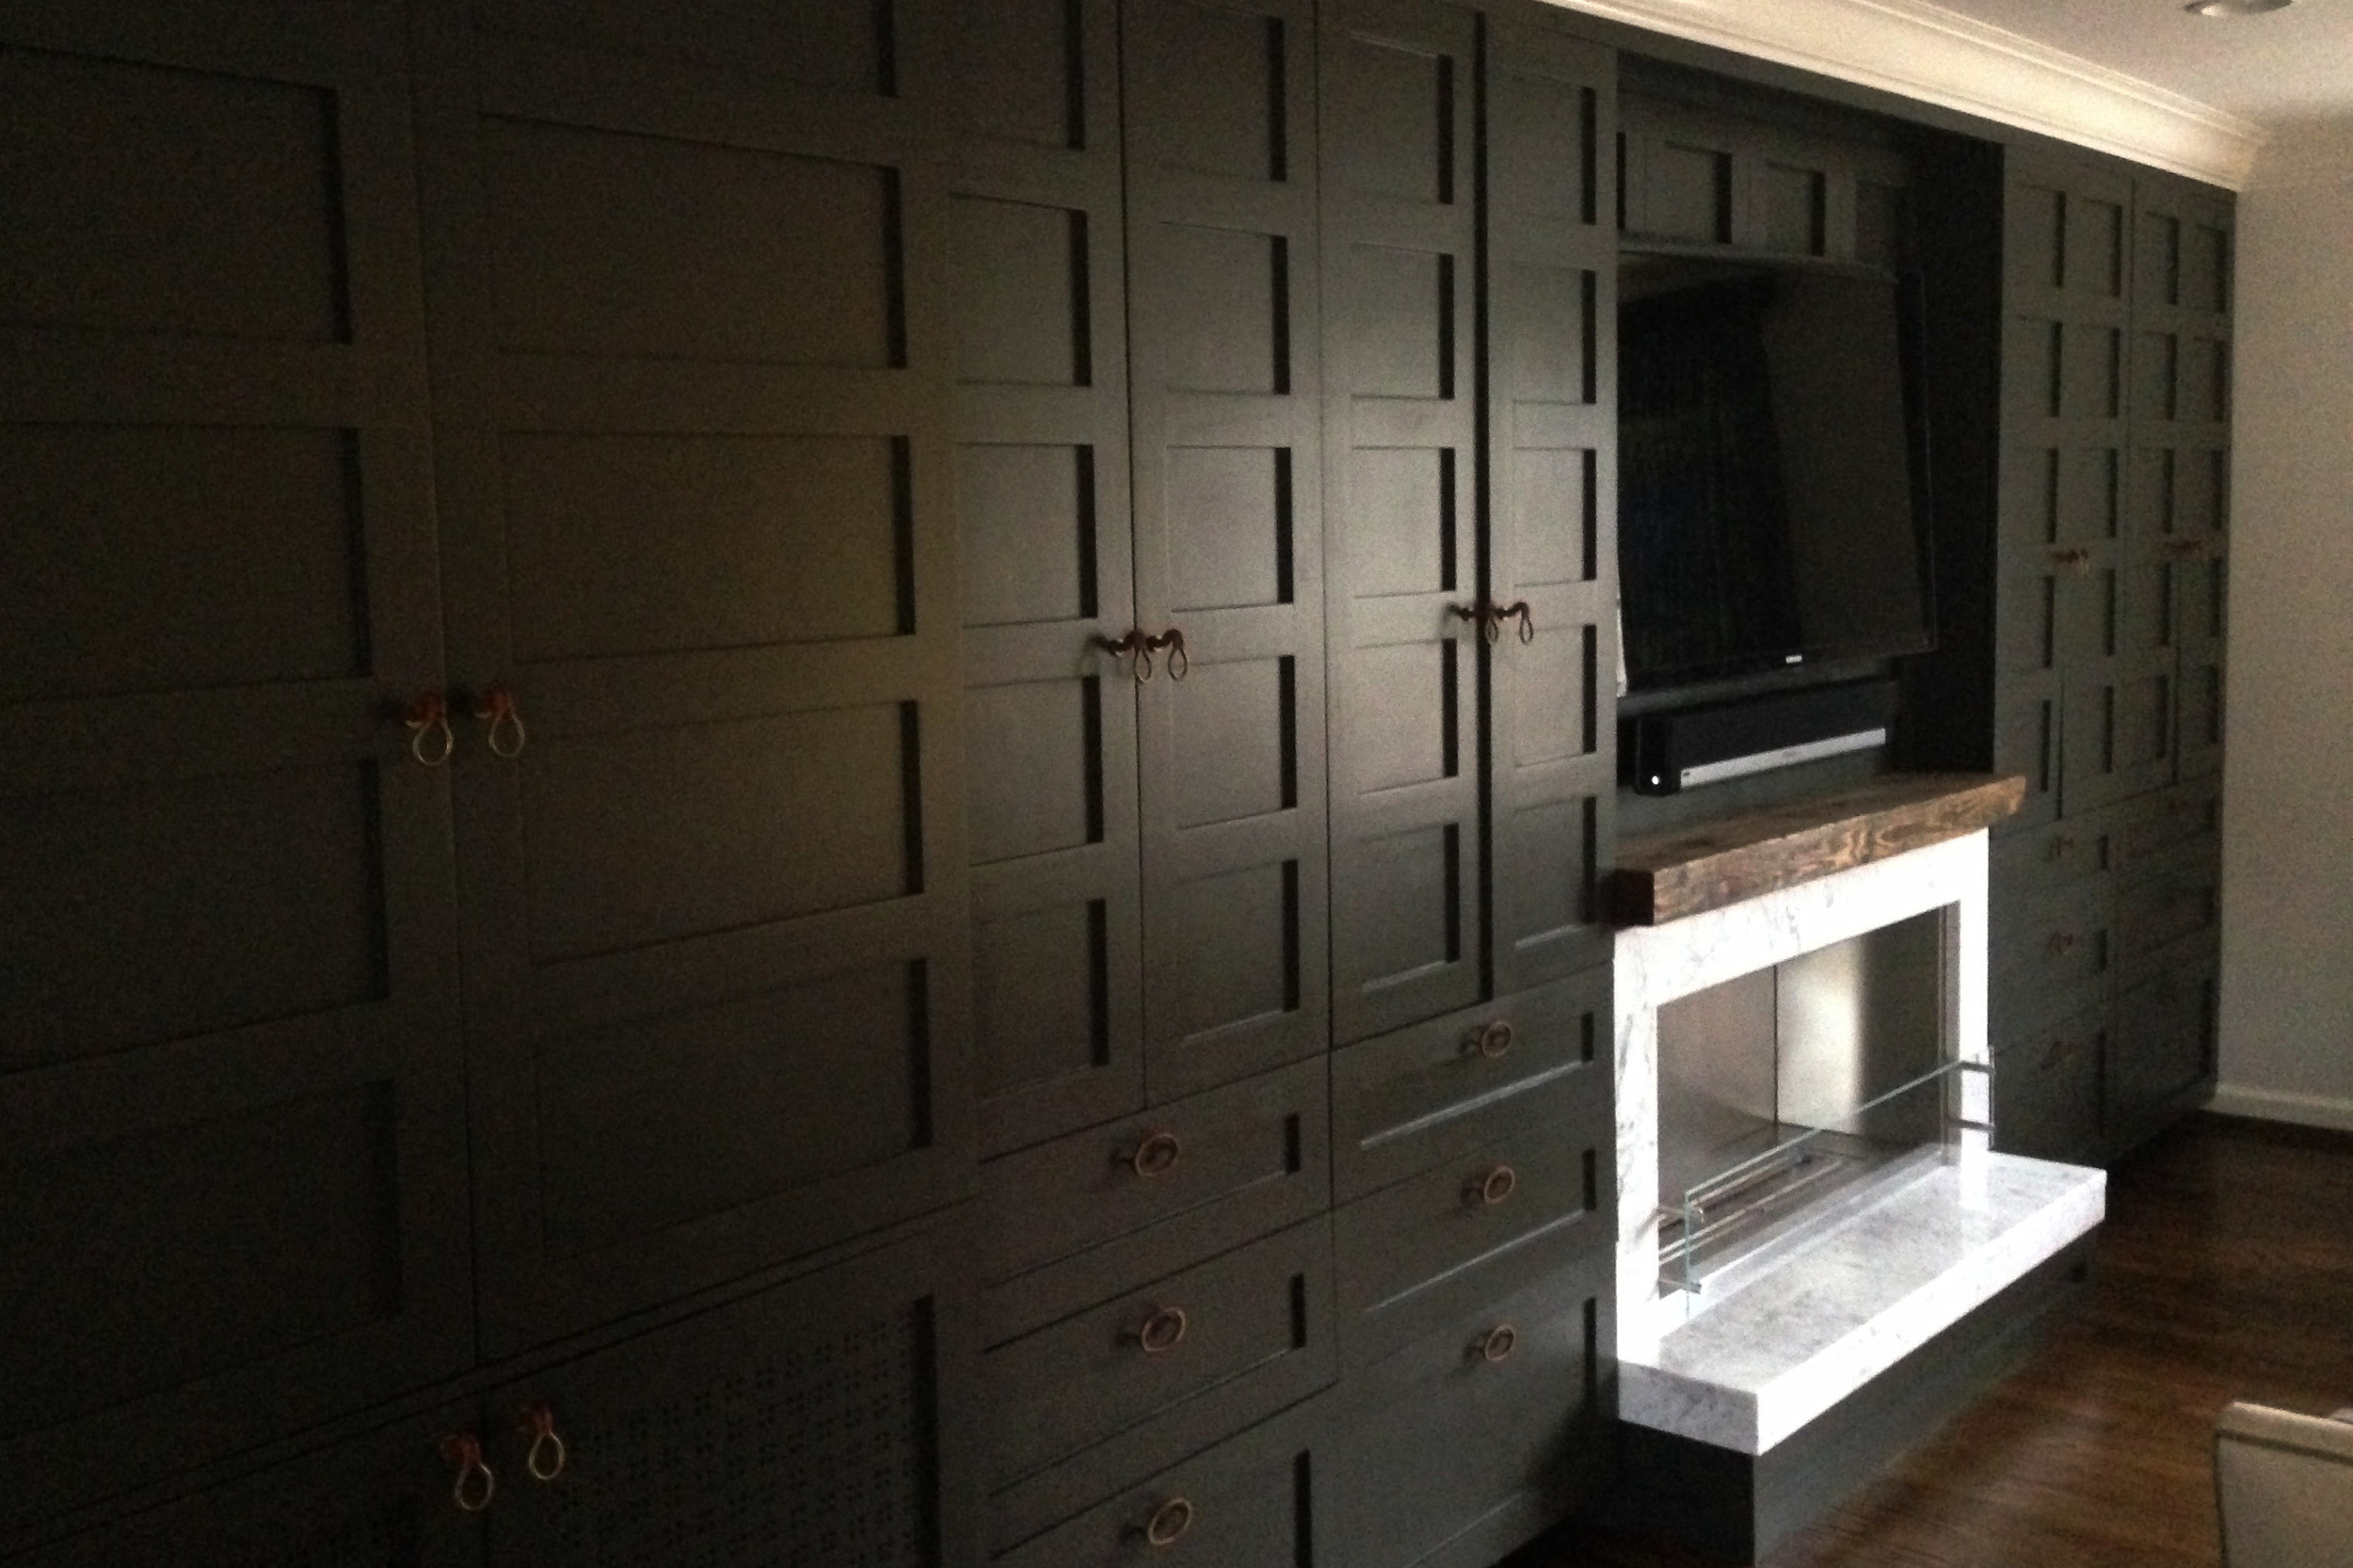 adams cabinetry and ecosmart fp.jpg